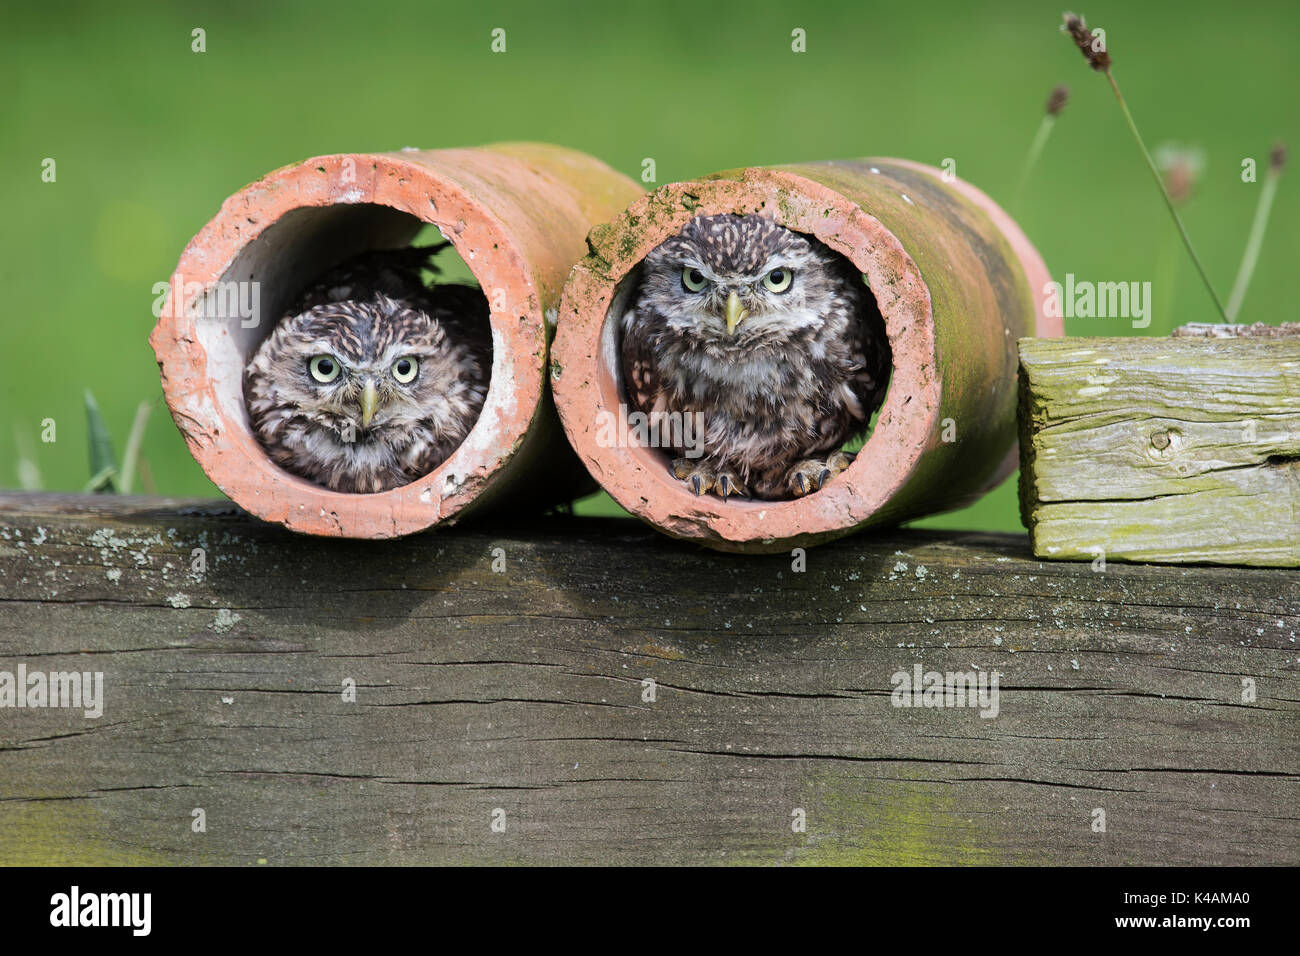 A pair of Little Owls Athene noctua in clay drainpipes under controlled conditions - Stock Image